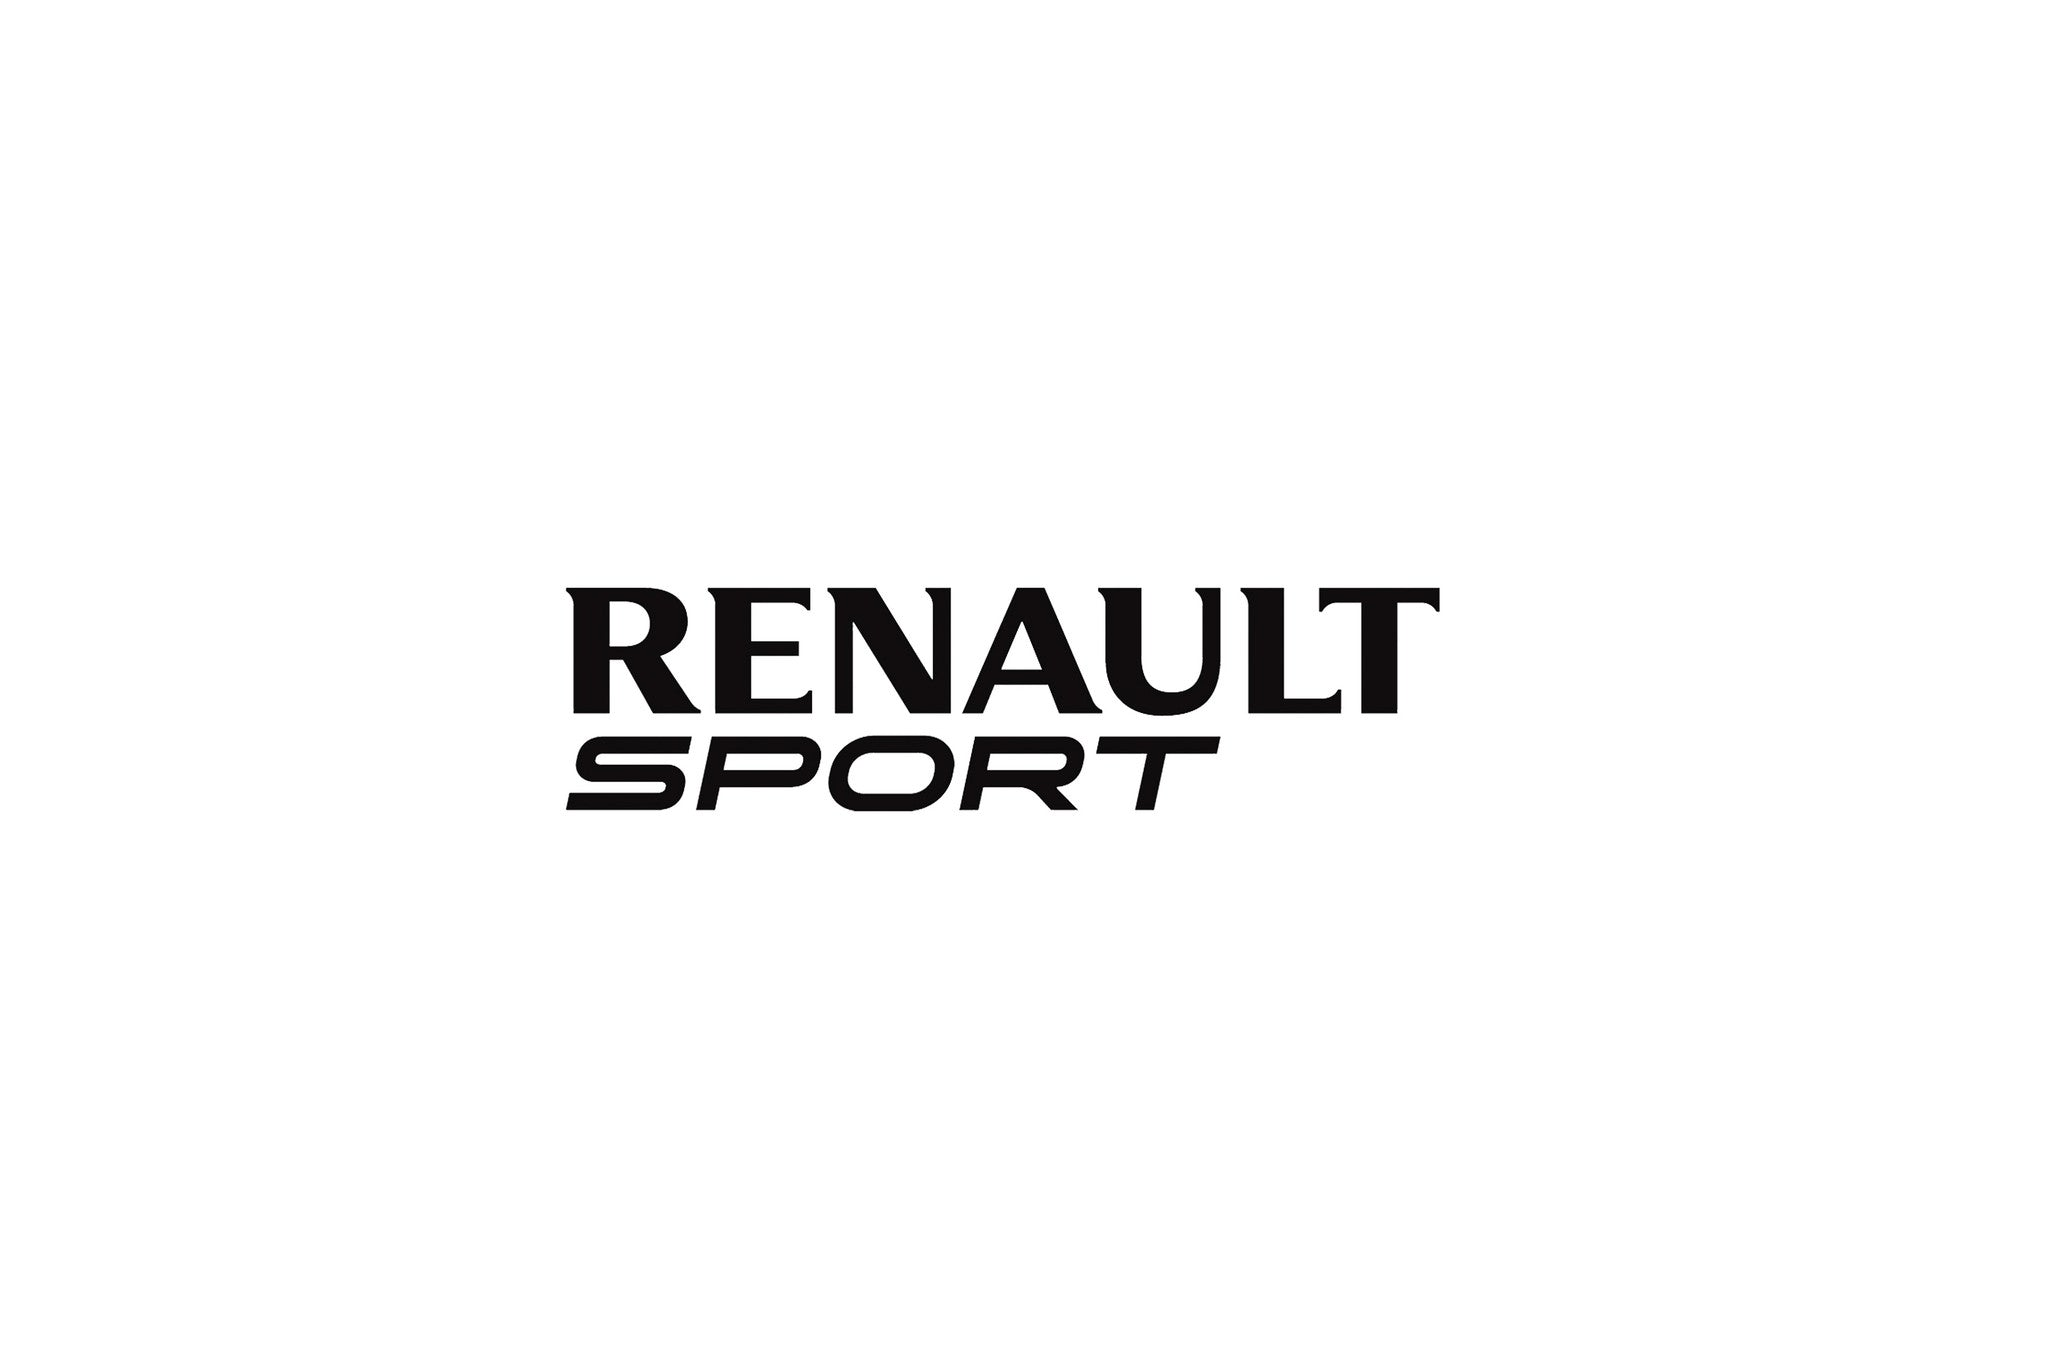 Renault Megane Sport R26 / 225 Side Curtain Airbags